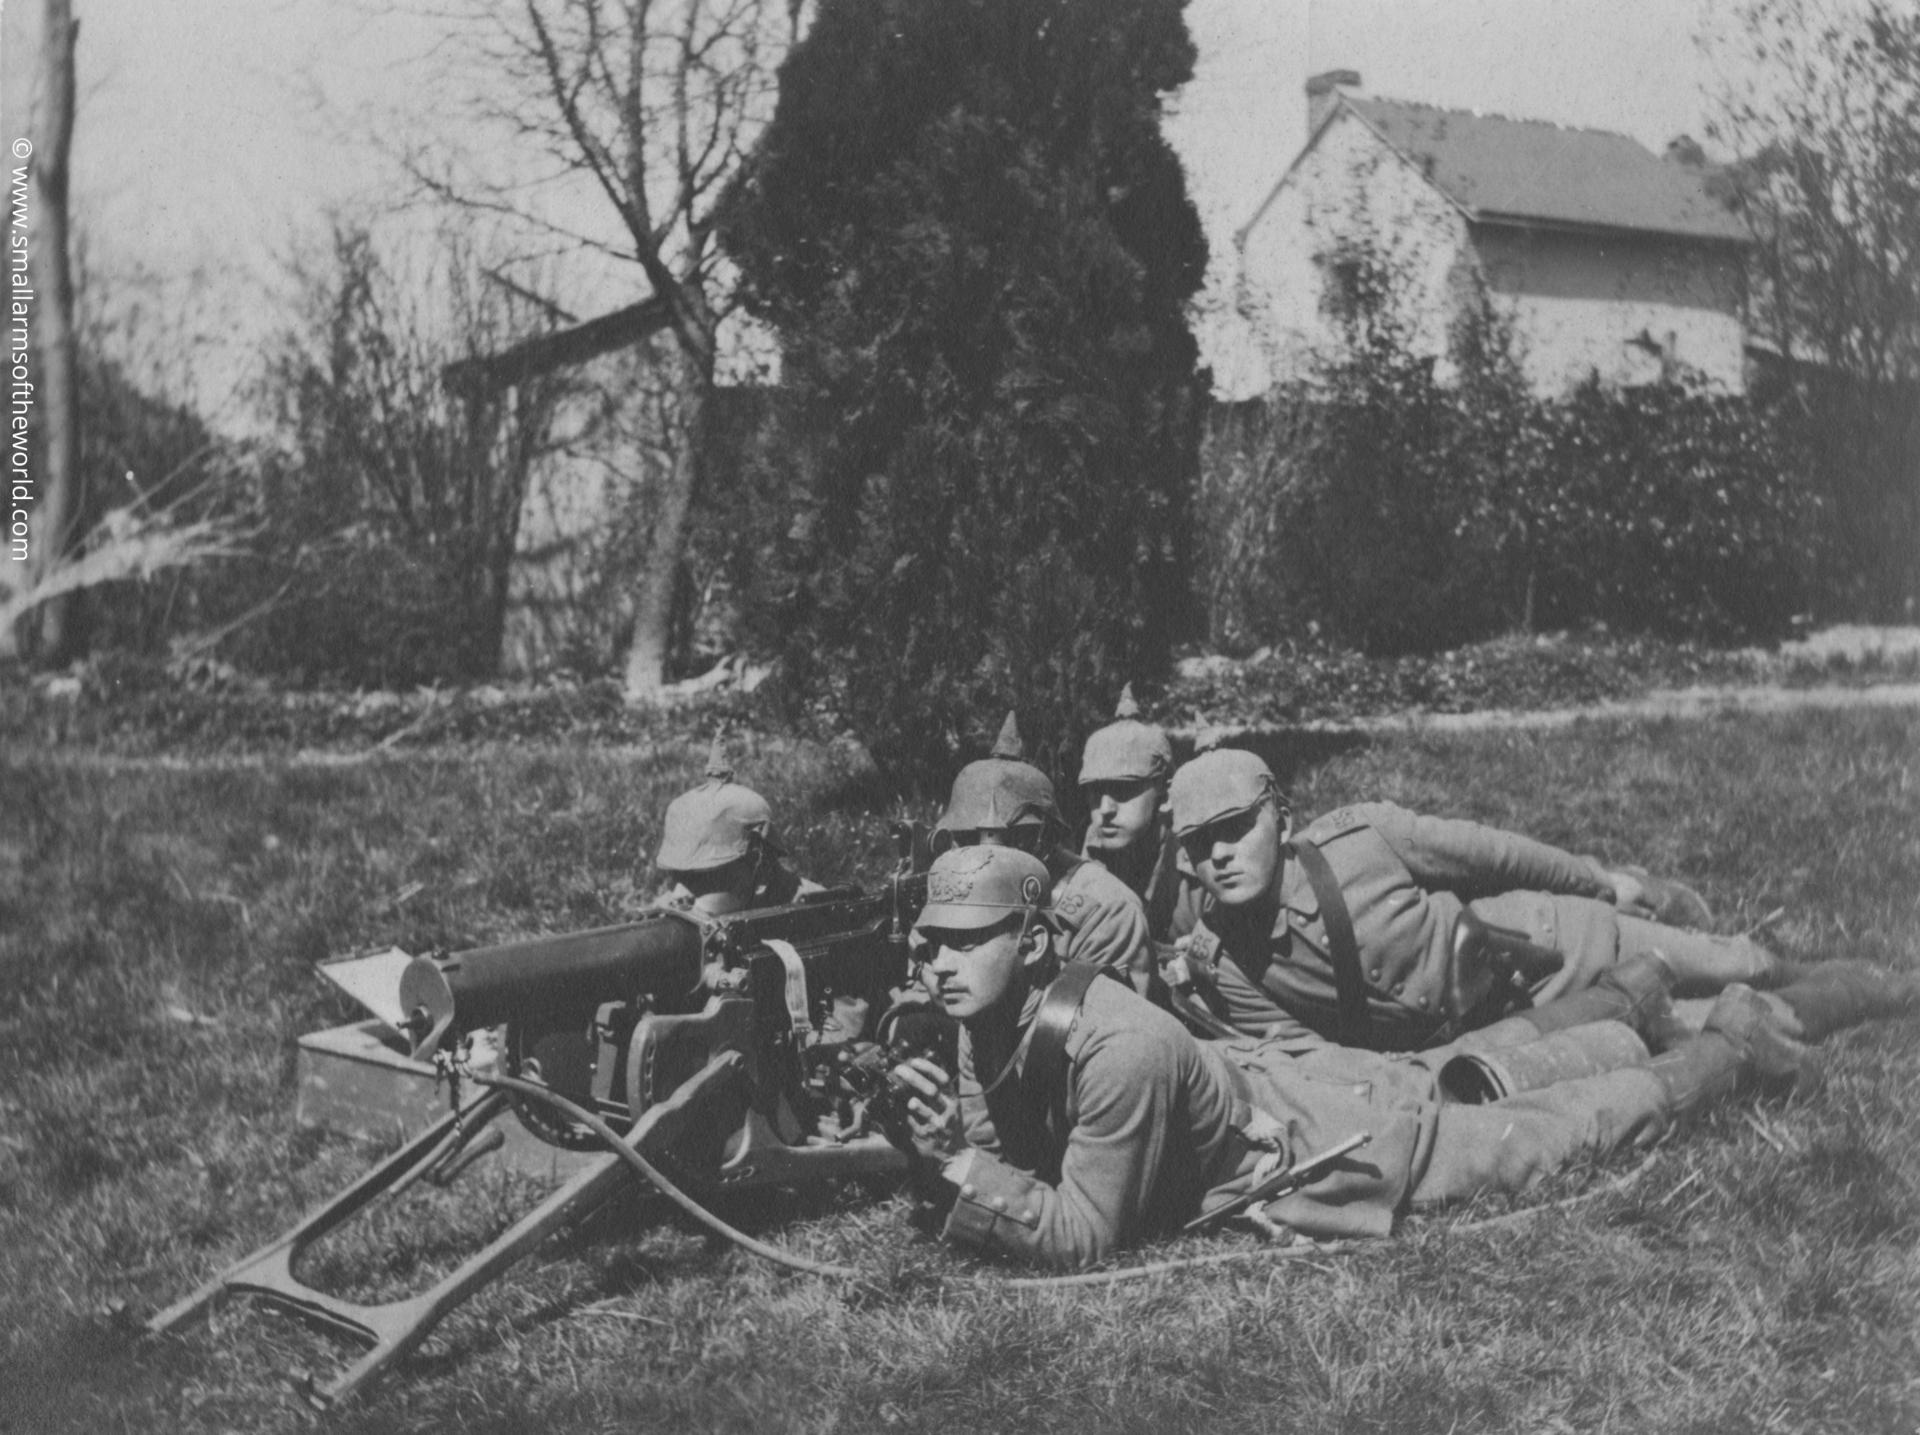 German machine gun crew with their Maxim MG08 machine guns